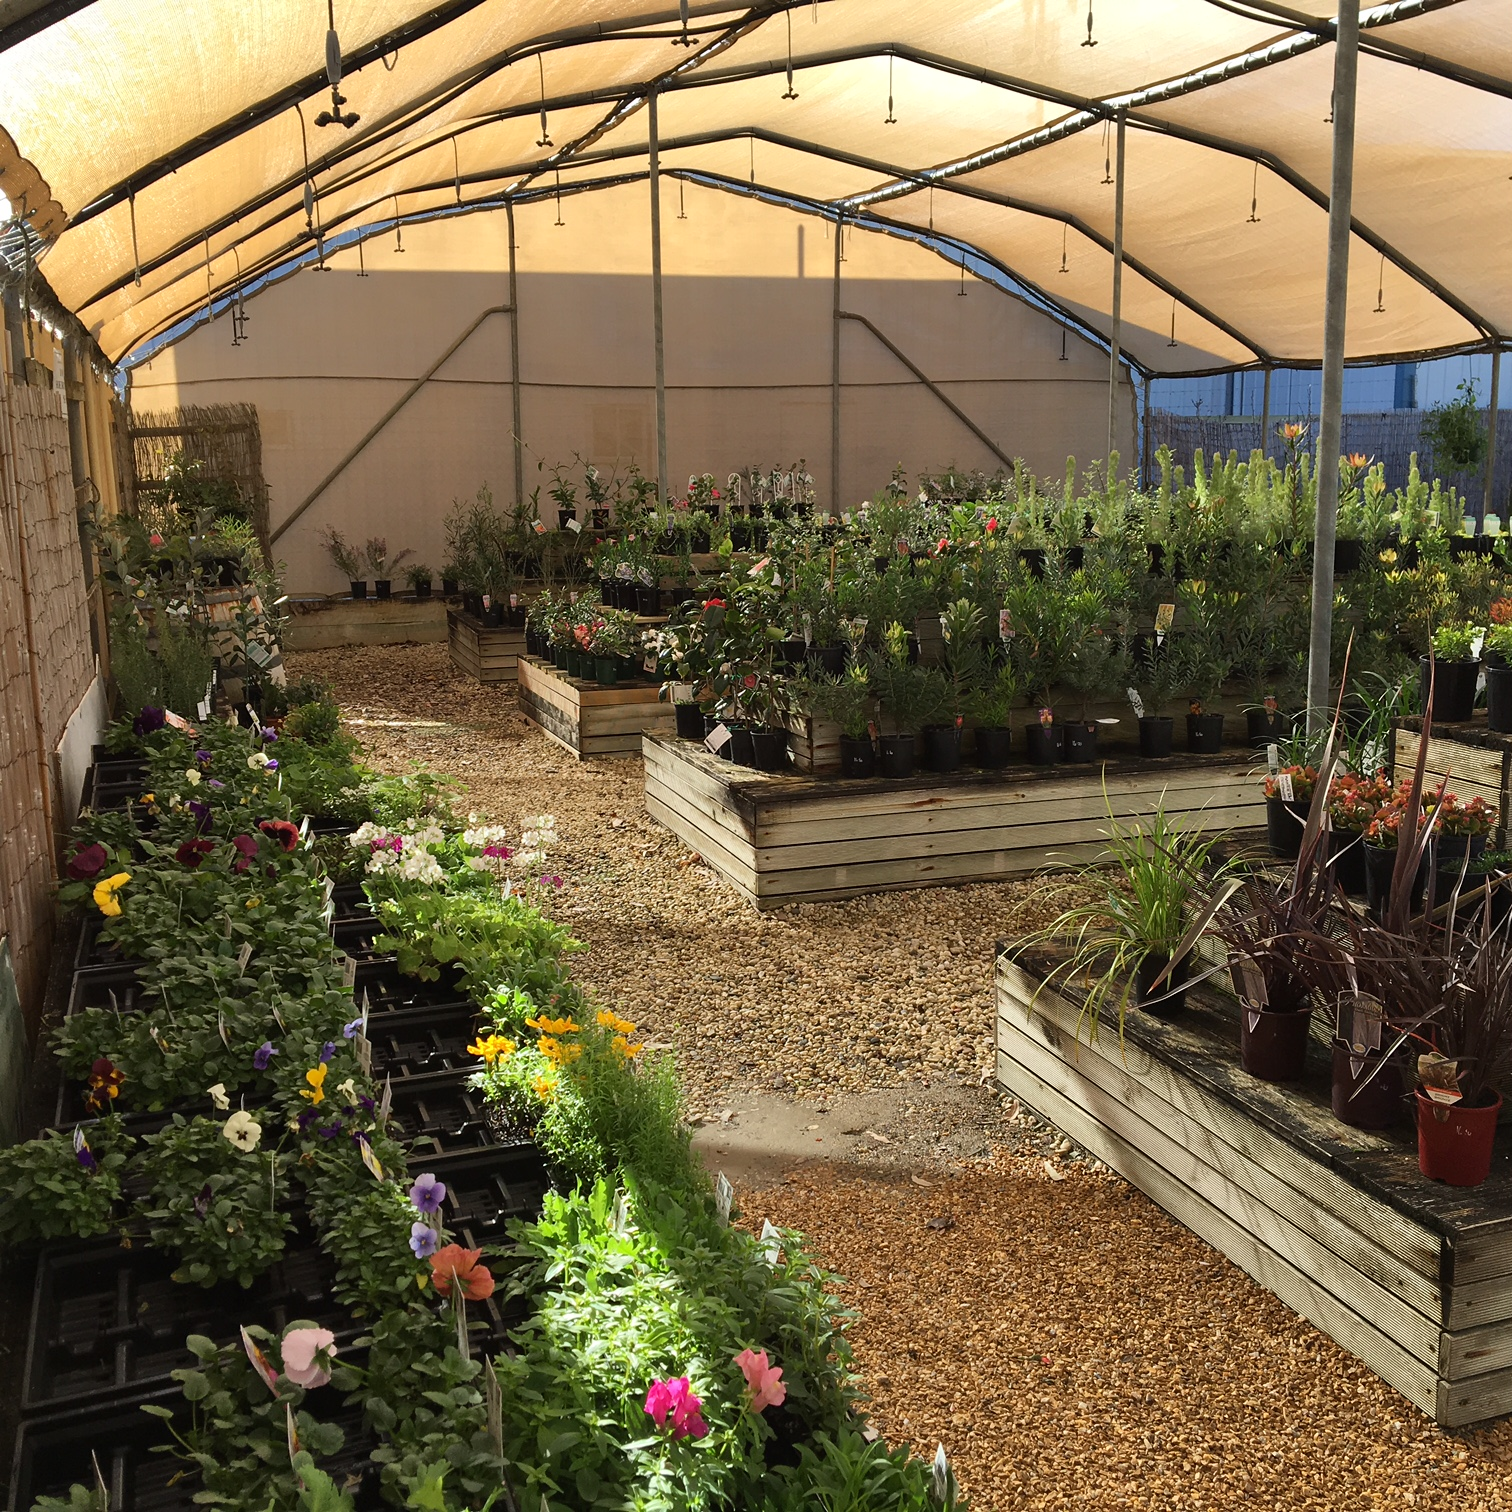 Wide range of plants and seedlings